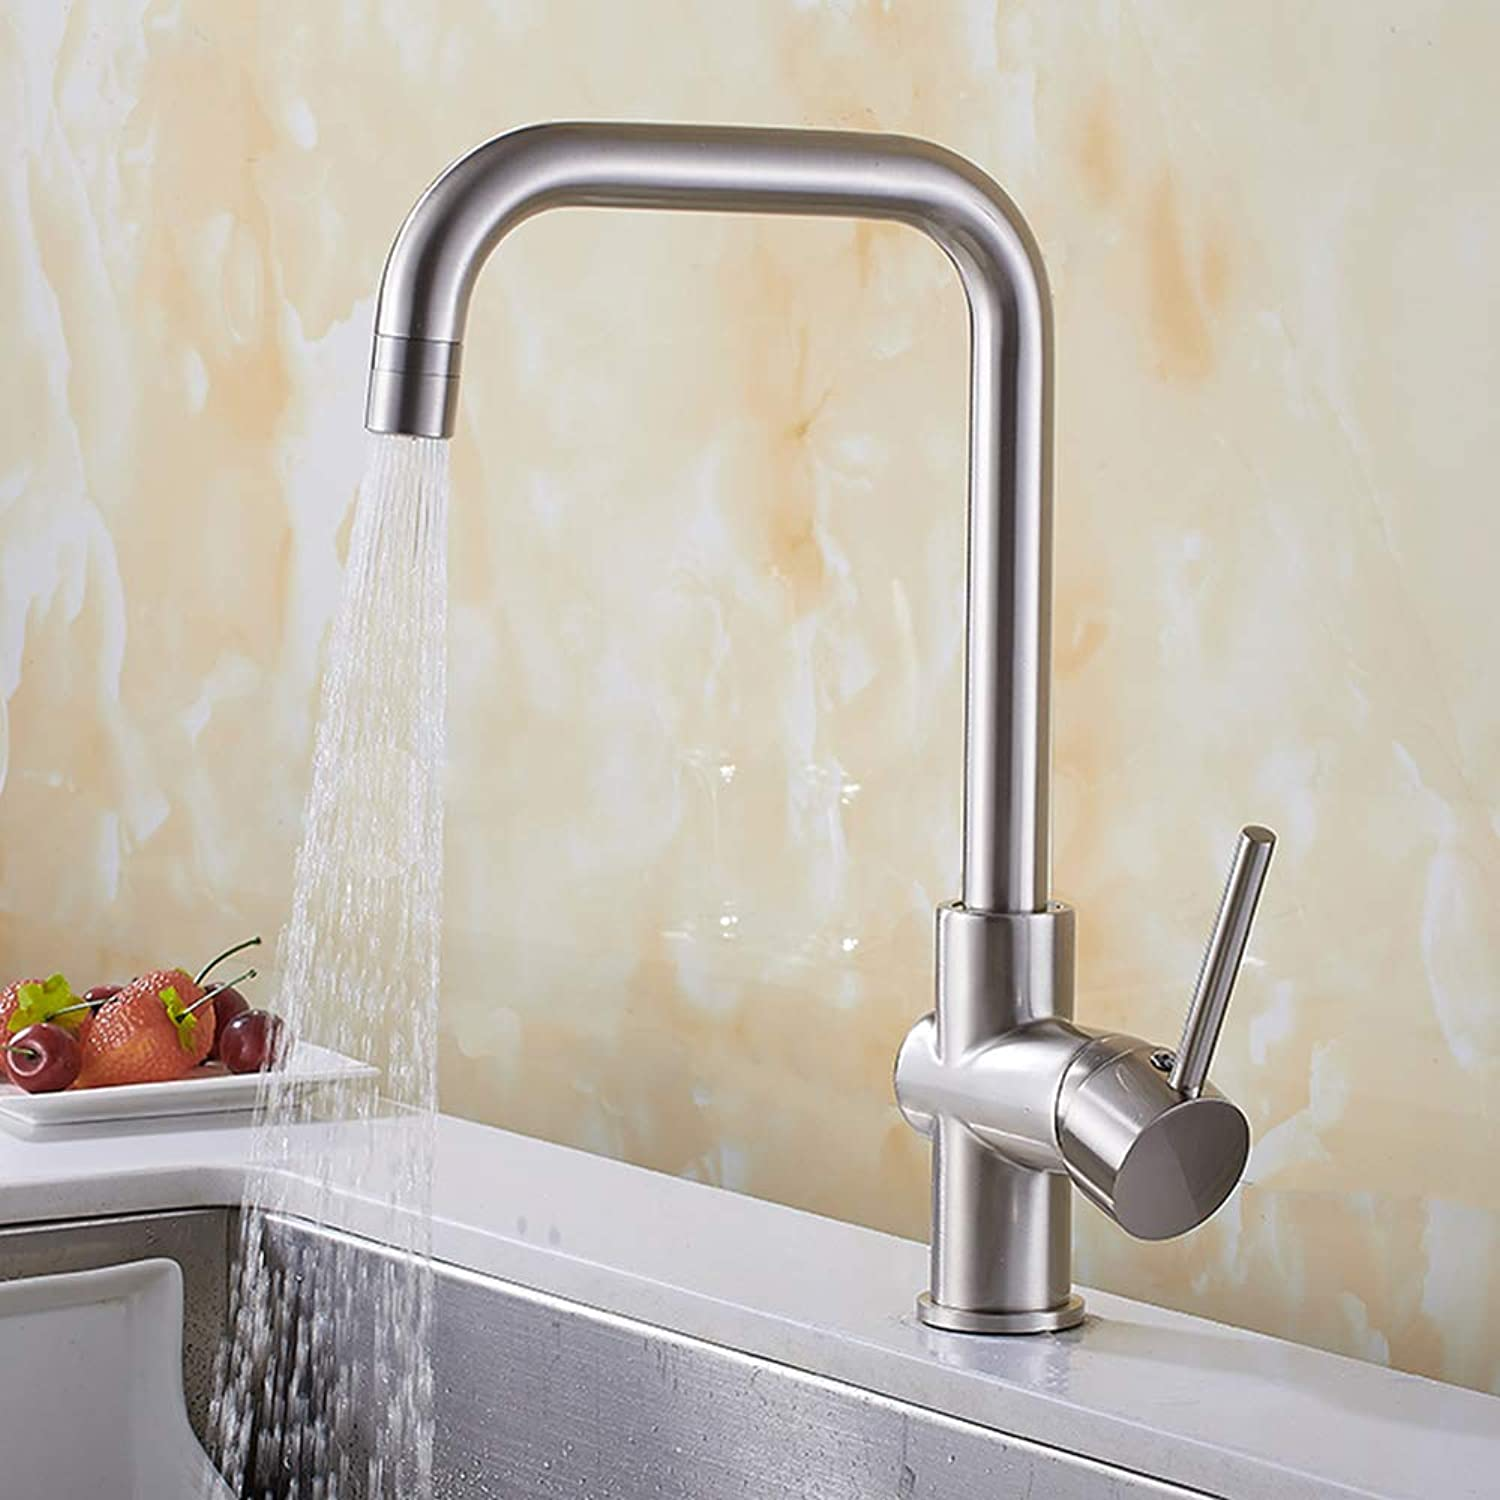 JRUIAN Brushed Kitchen Sink Mixer Tap 360° Swivel Single Lever Brass Two Jet Types, Silver